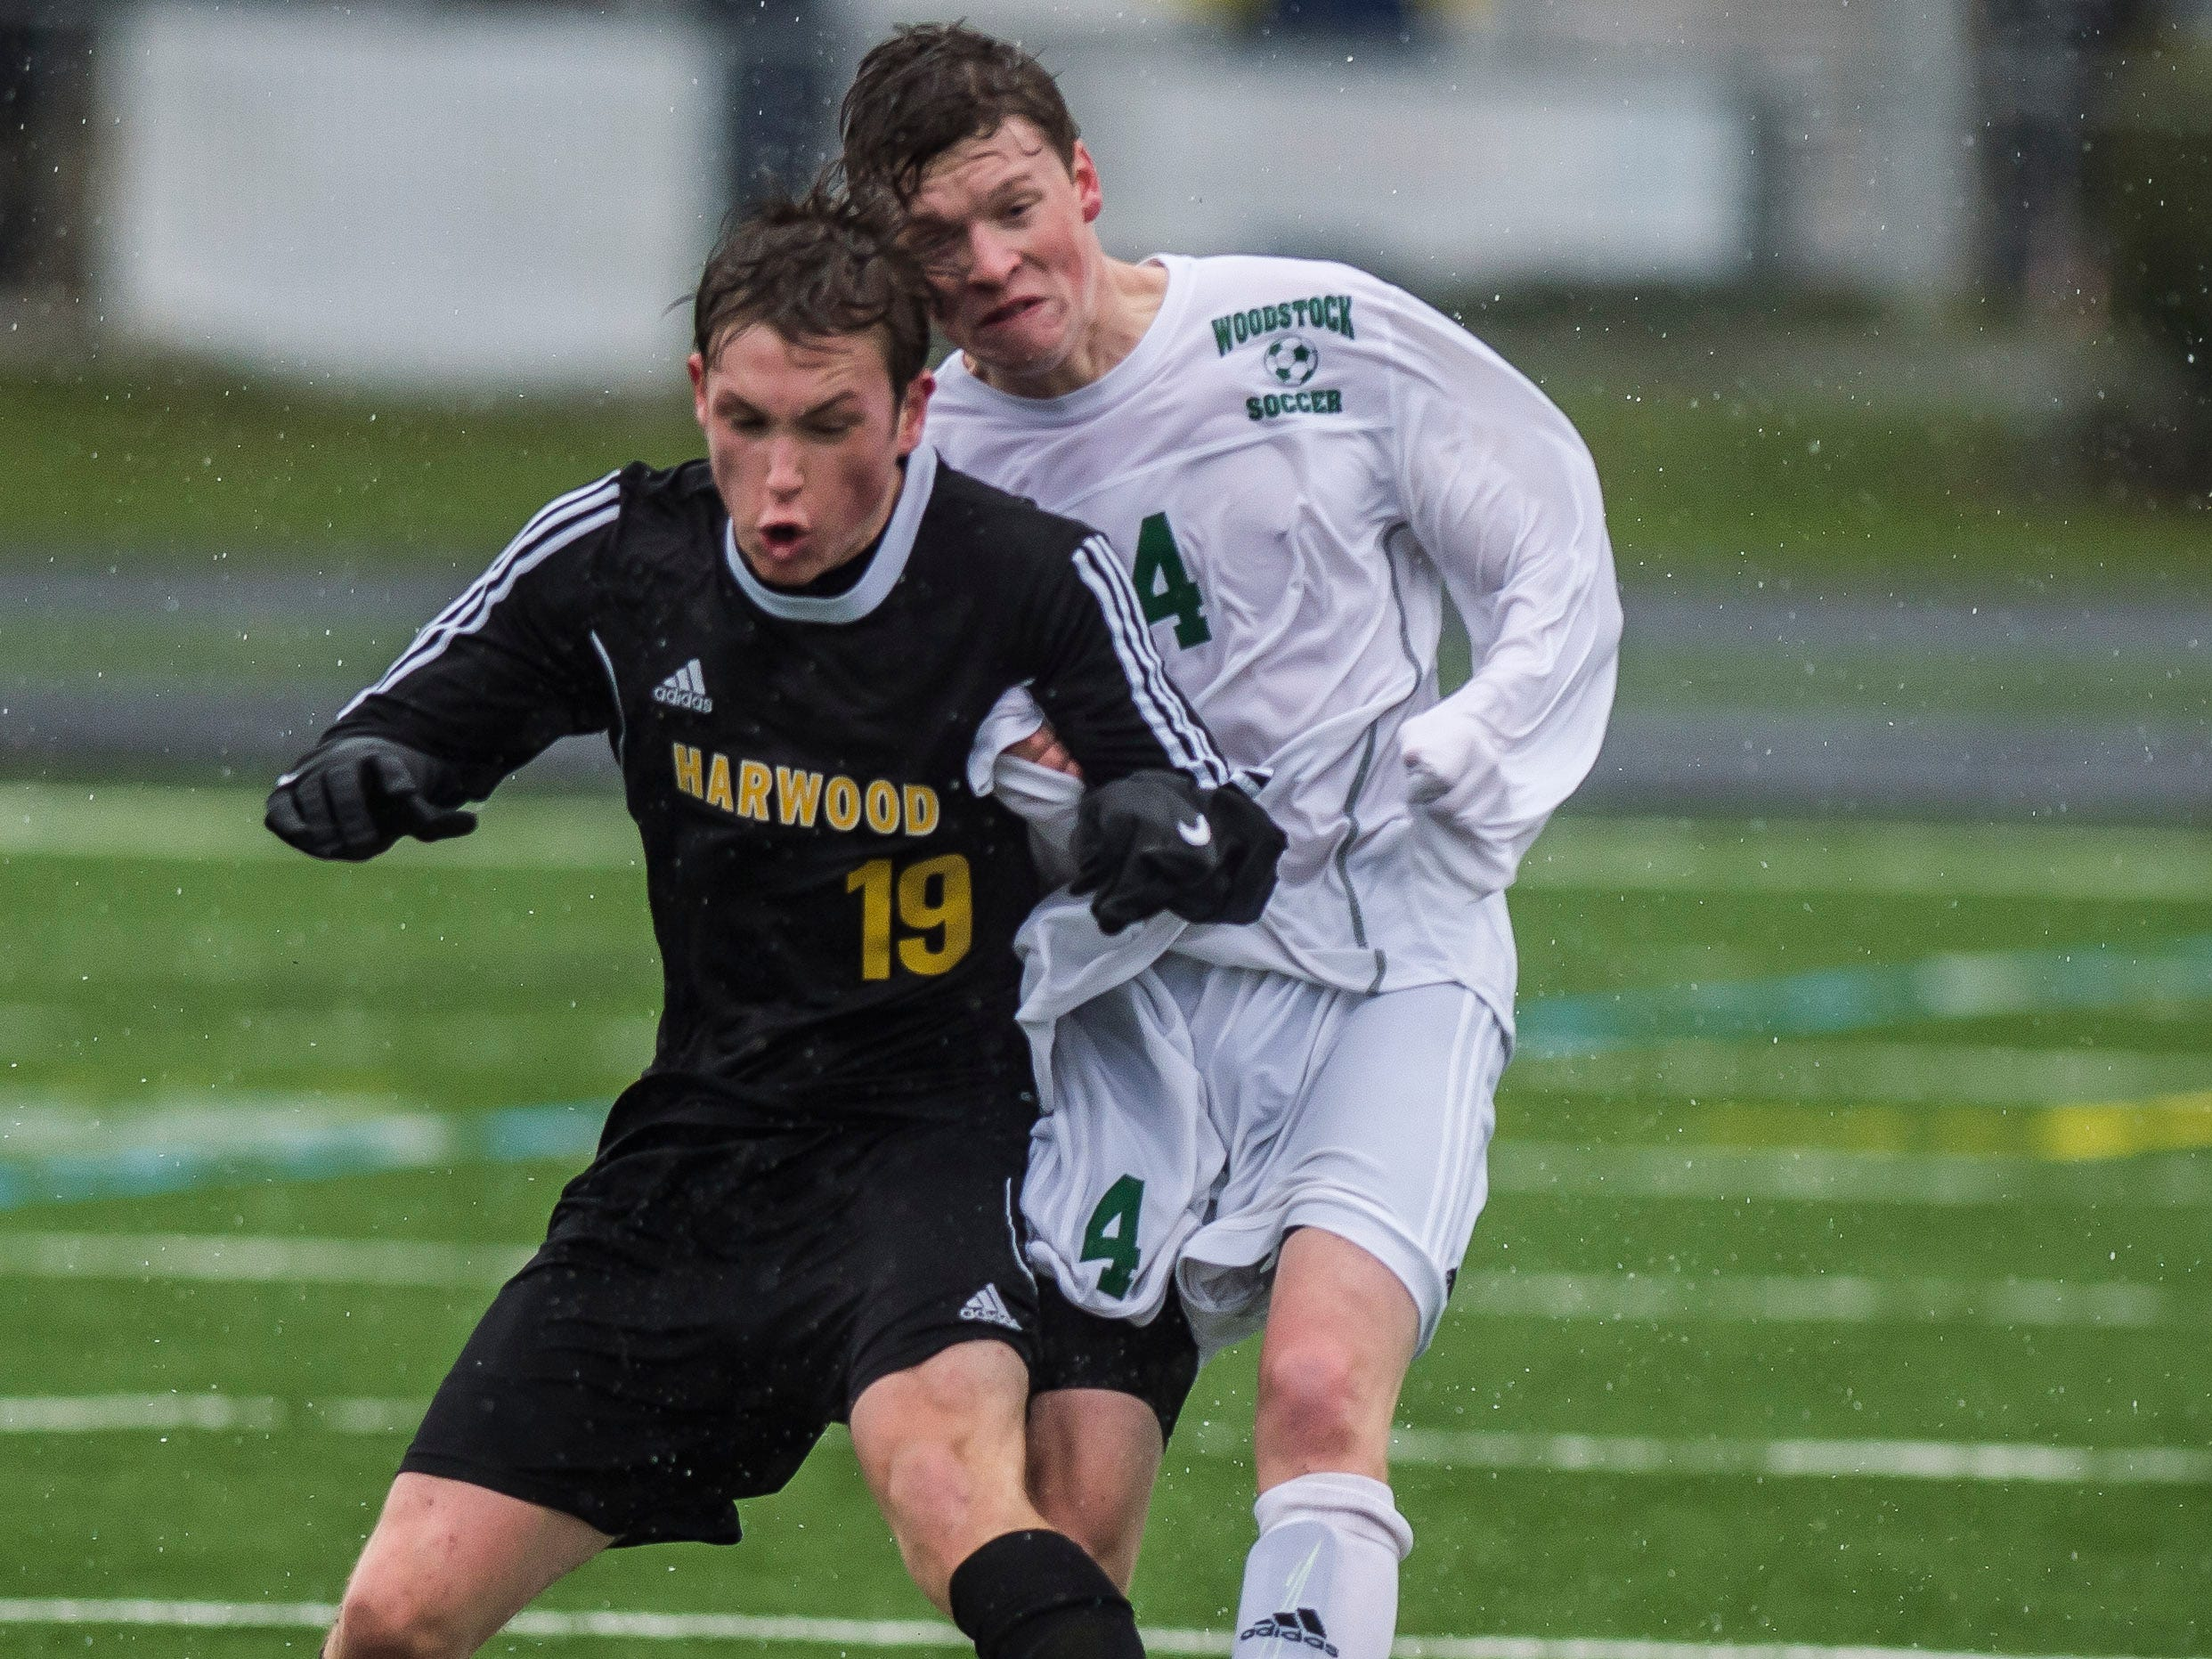 Hardwood #19 Duncan Weinman fights for the ball against Woodstock #4 Mason Harkins during their Div. 2 Vermont State high school boy's soccer championship game at South Burlington High School on Saturday, Nov. 3, 2018. Hardwood Union won, 3-0.